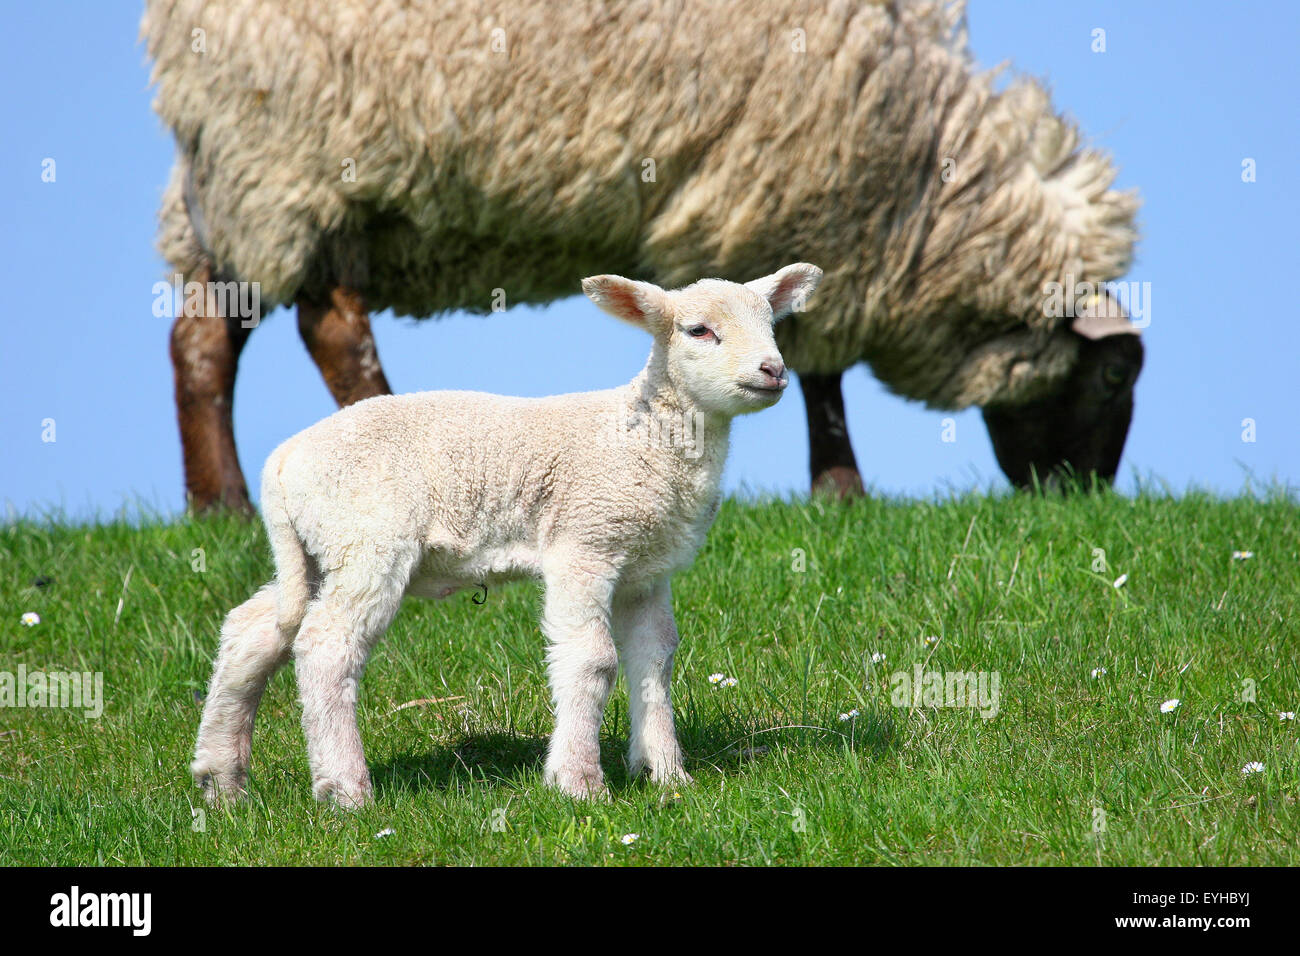 Sheep (Ovis ammon f.aries), lamb and ewe, Schleswig-Holstein, Germany - Stock Image